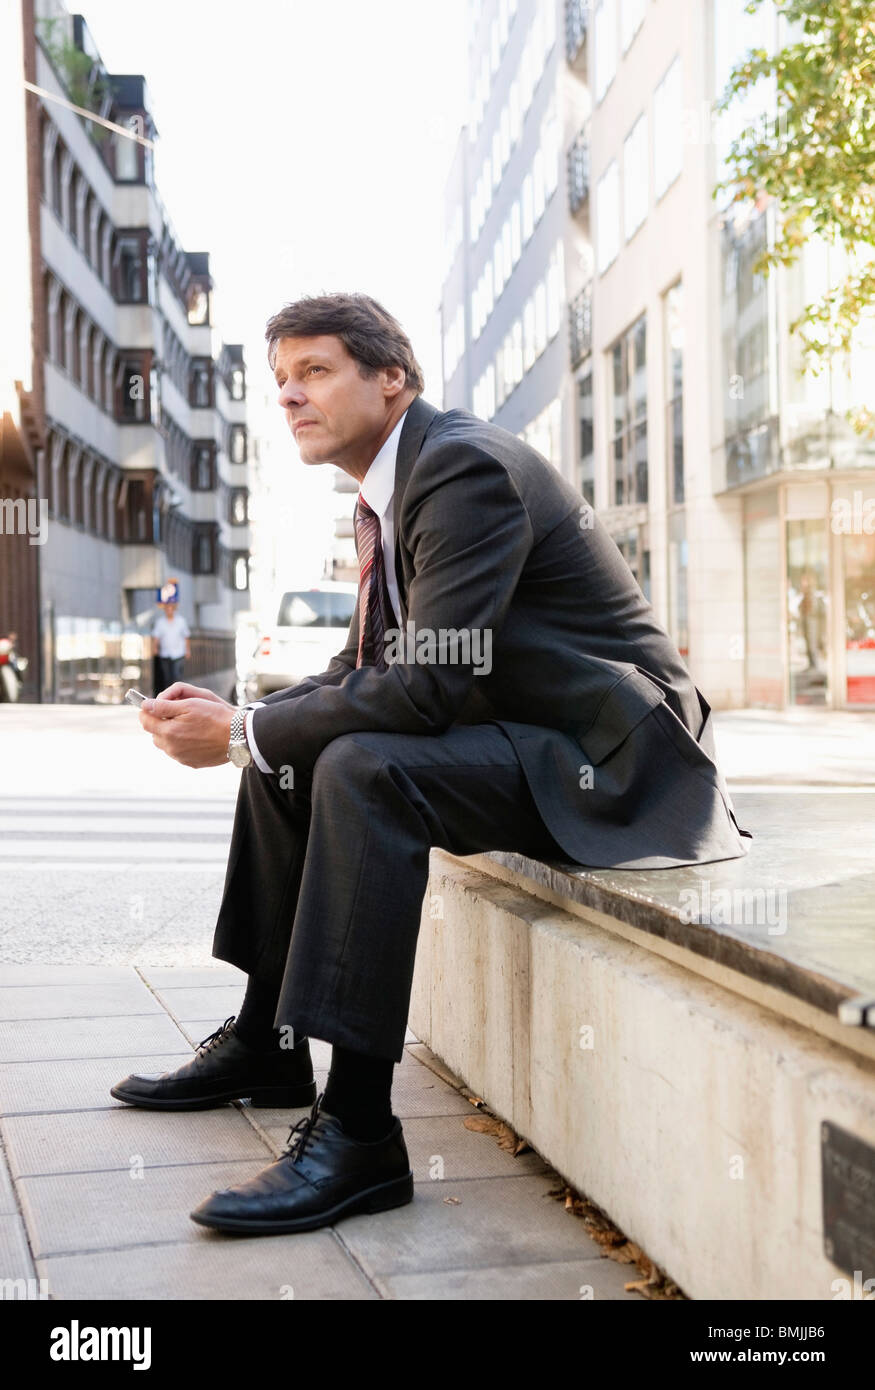 Sit and wait - Stock Image